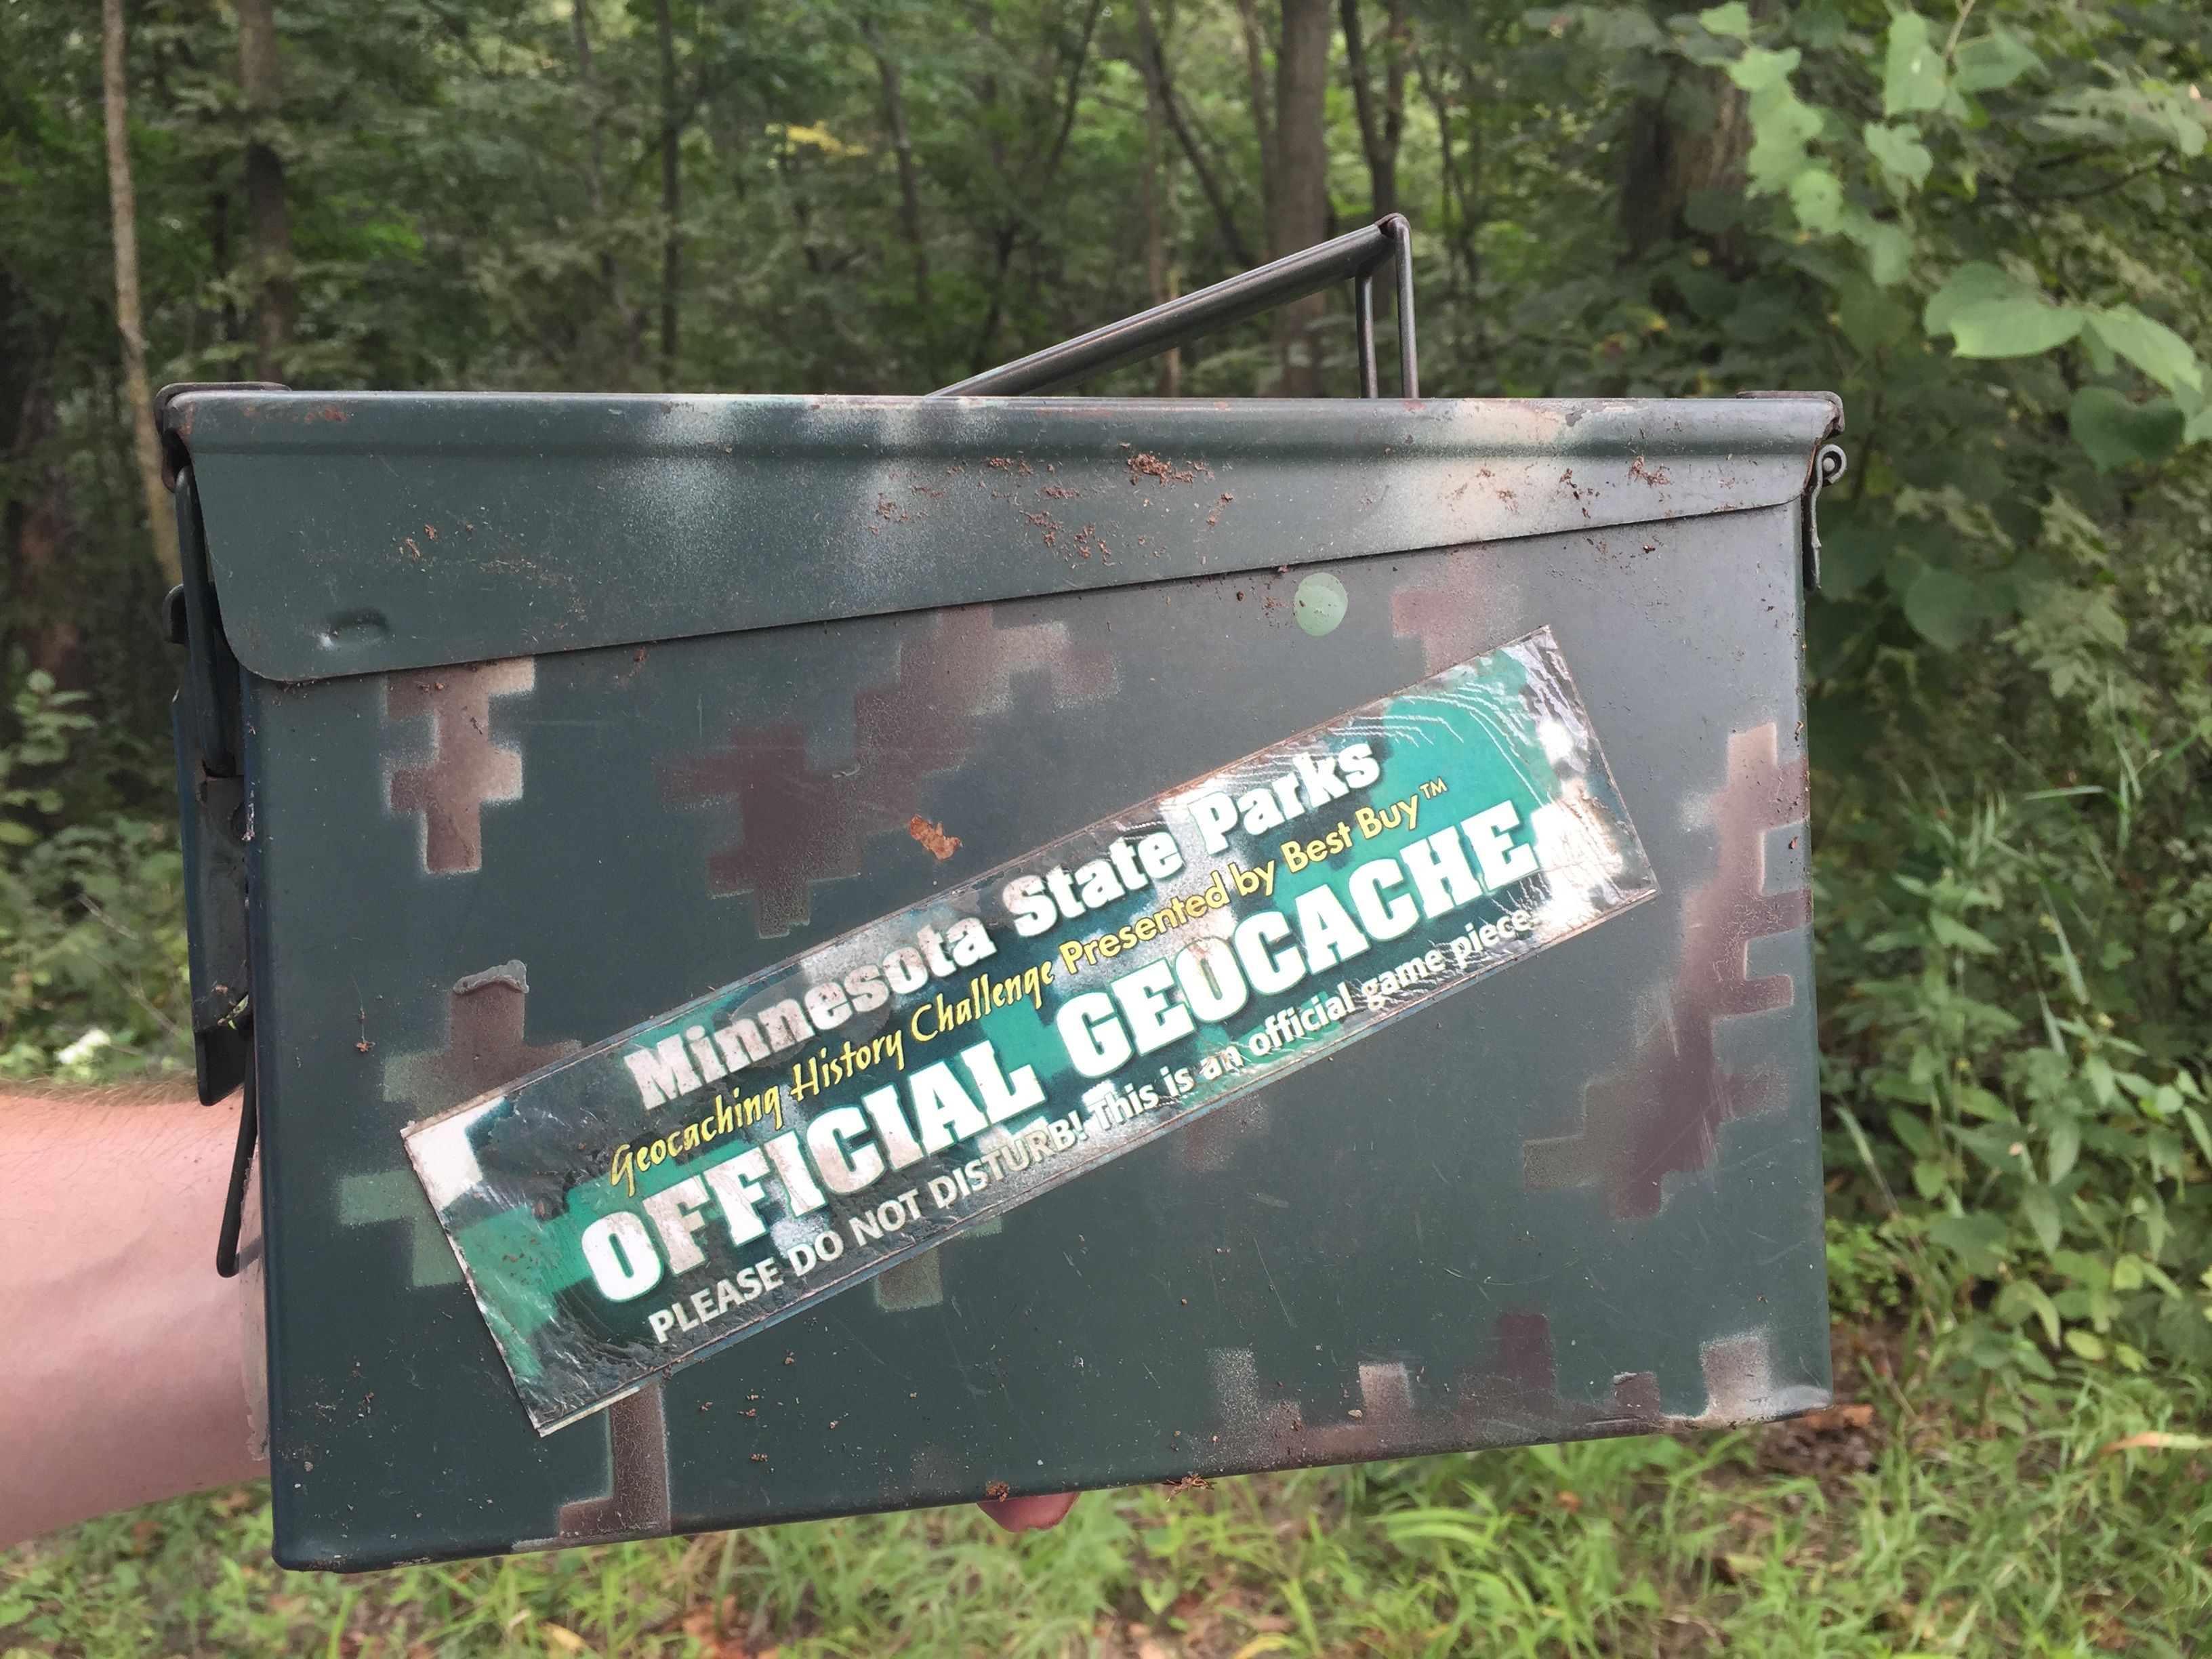 A hidden gem!  In Upper Sioux Agency State Park in Minnesota they have a private set of geocaches you can find and earn a cool coin AND find one of the original Minnesota State Park History challenge cards from 2008/2009.